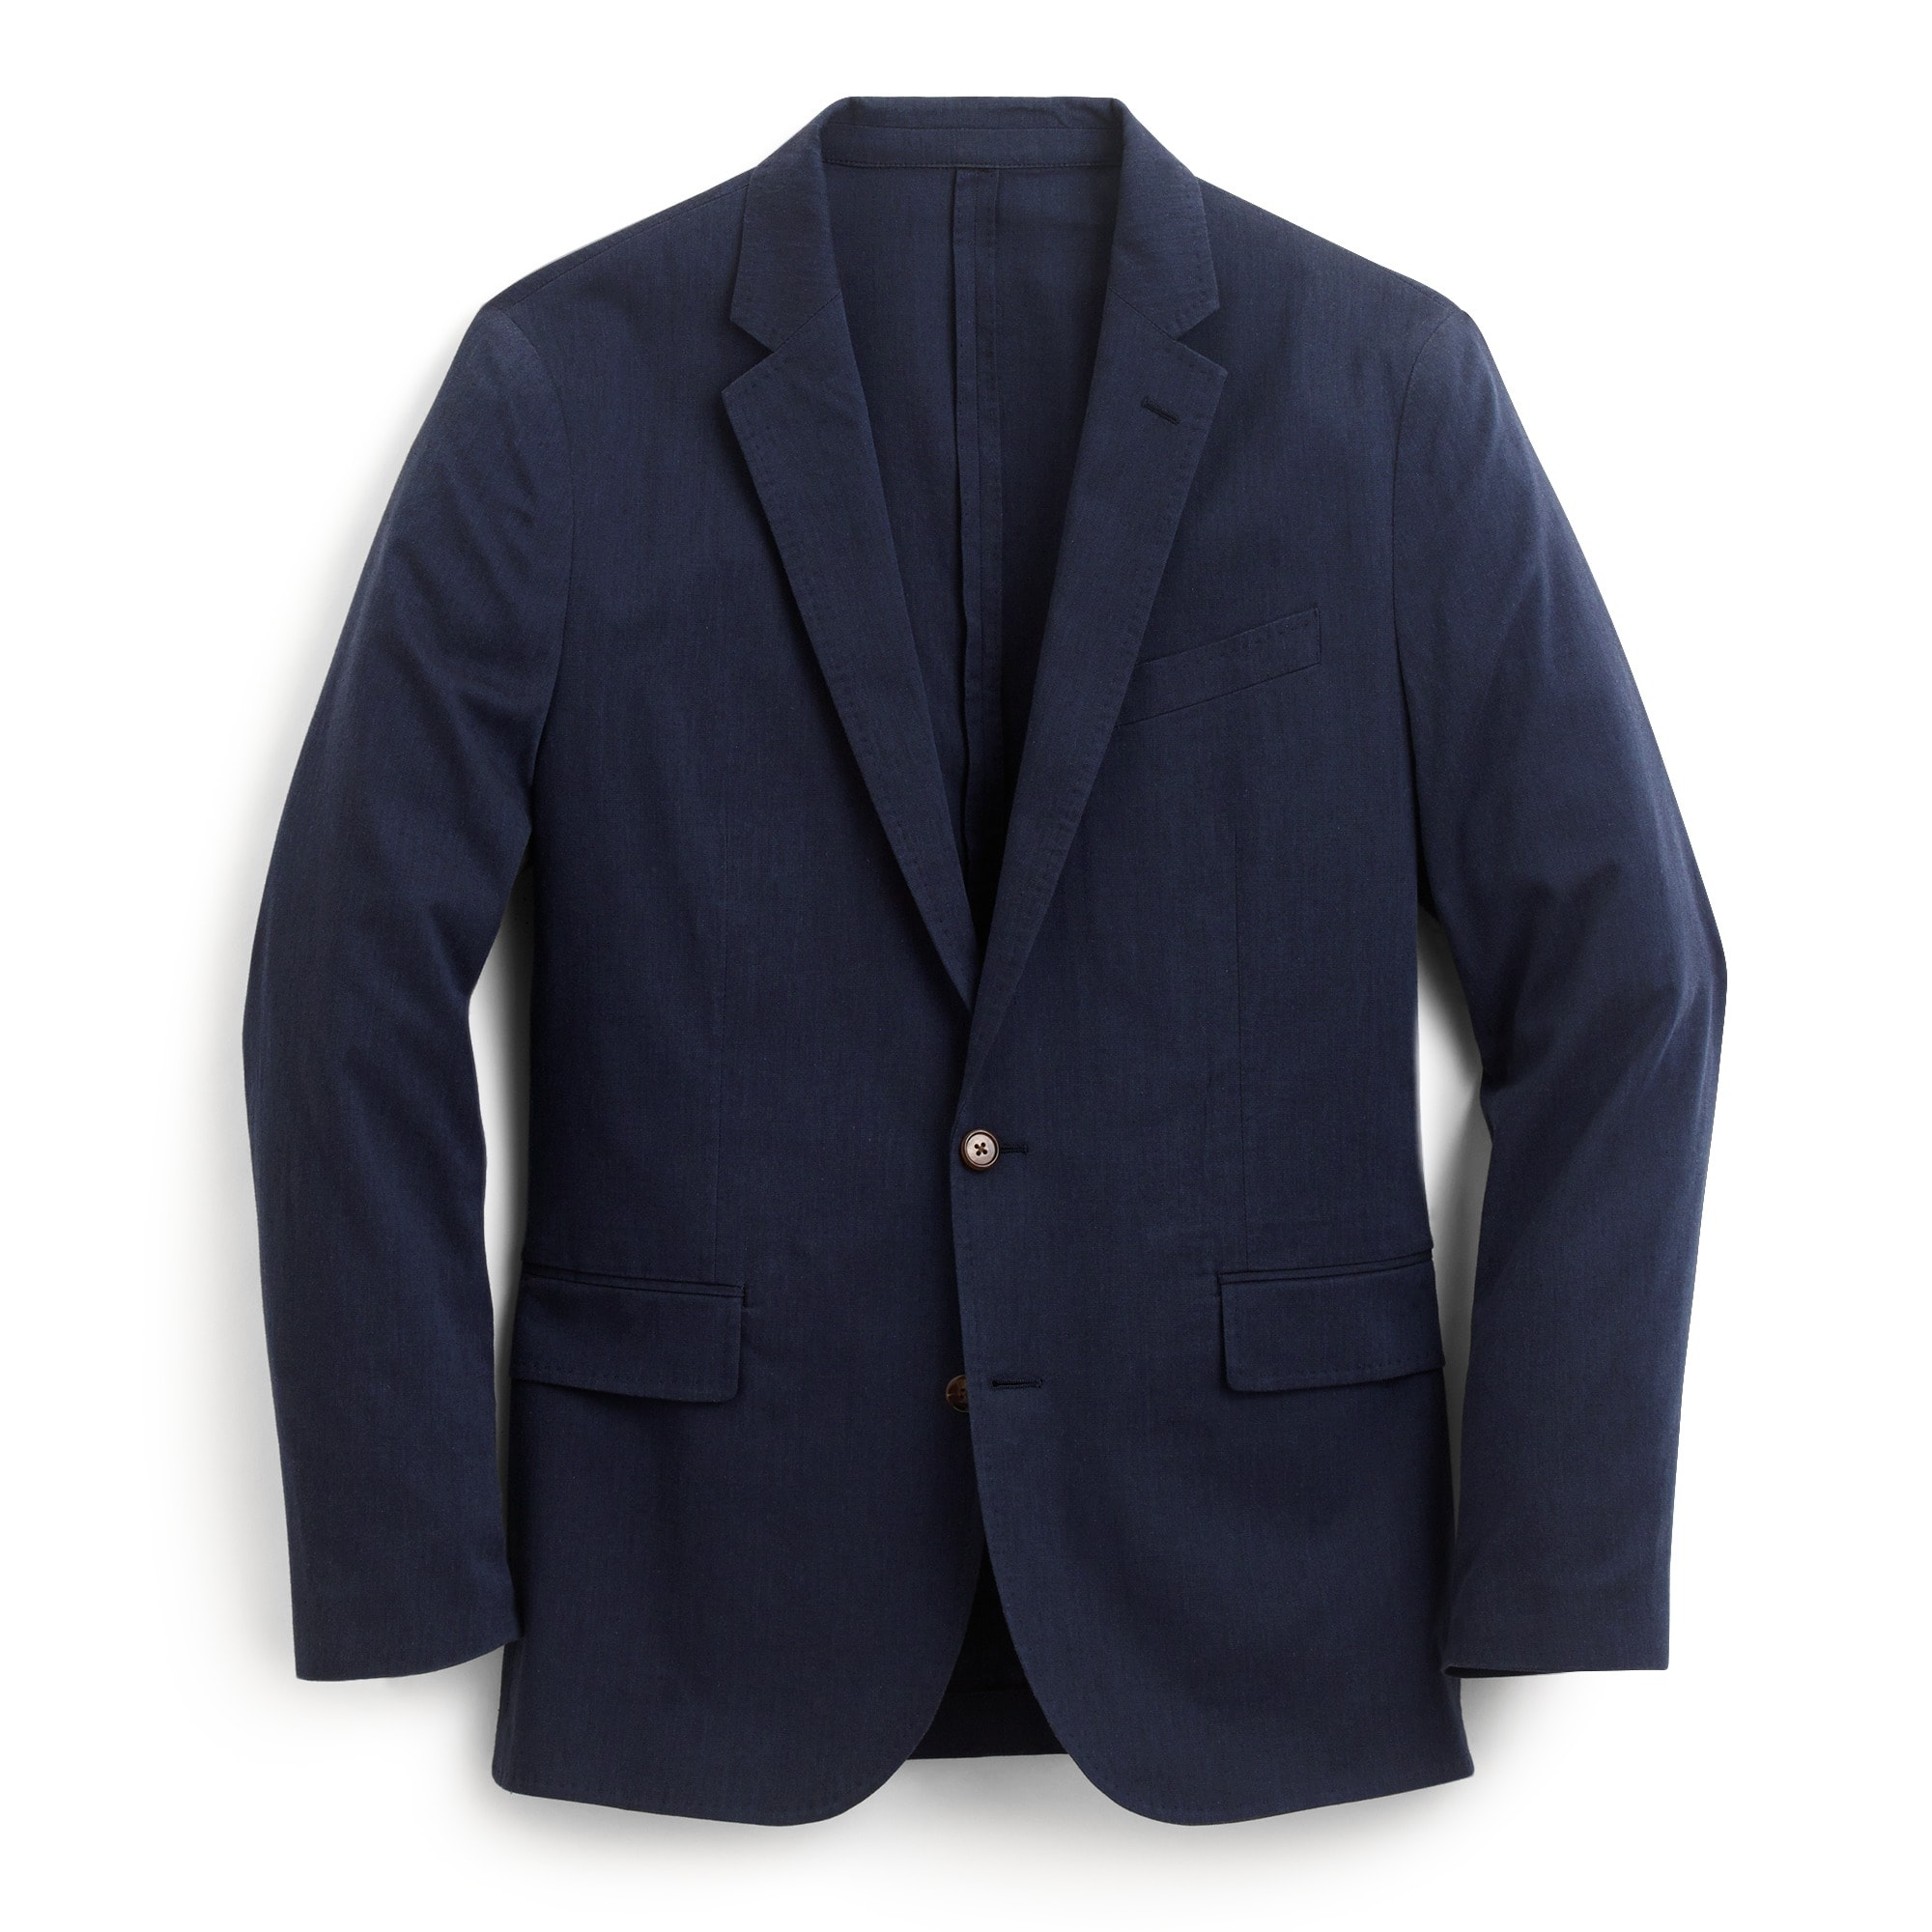 Image 2 for Ludlow Slim-fit unstructured suit jacket in stretch cotton